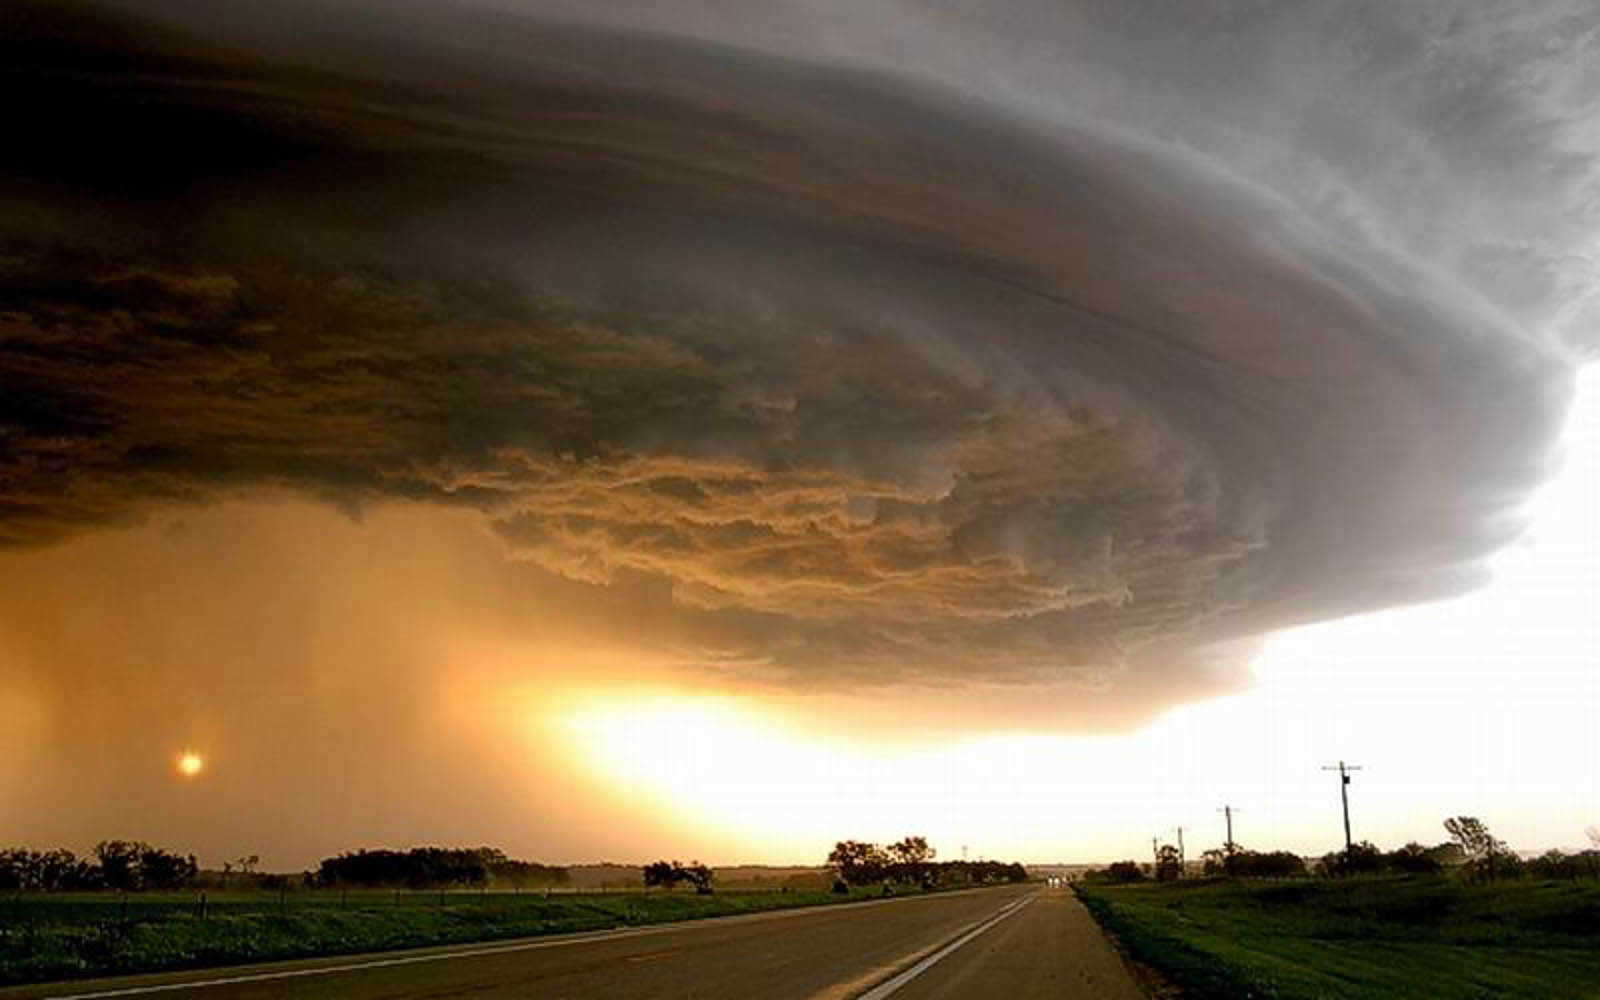 Download 3d Moving Wallpapers For Windows 7 Wallpapers Tornado Photos